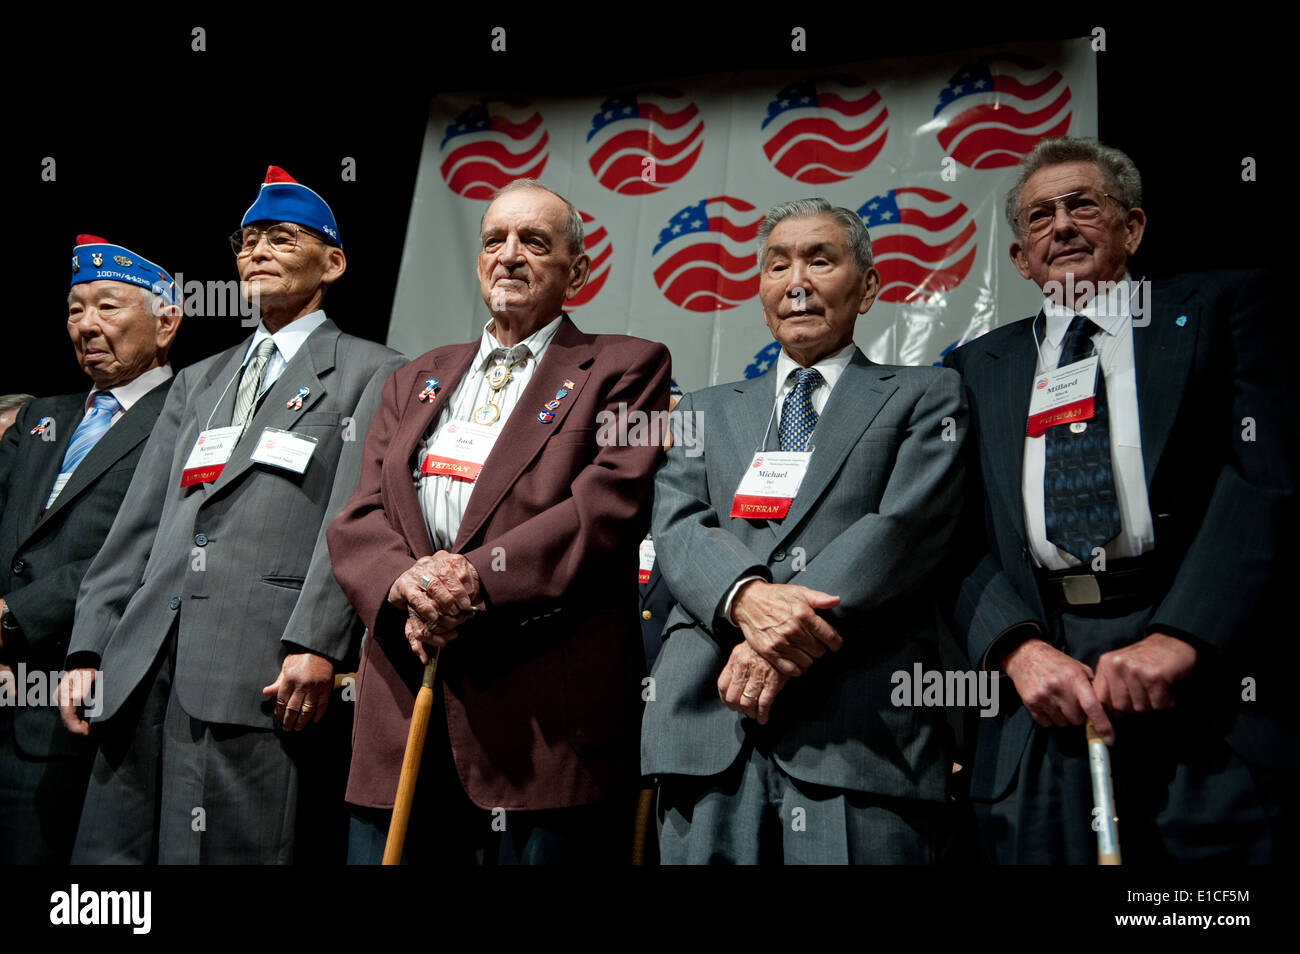 US Army Veterans From The 141st Infantry Regiment And 442nd Regimental Combat Team Stand During